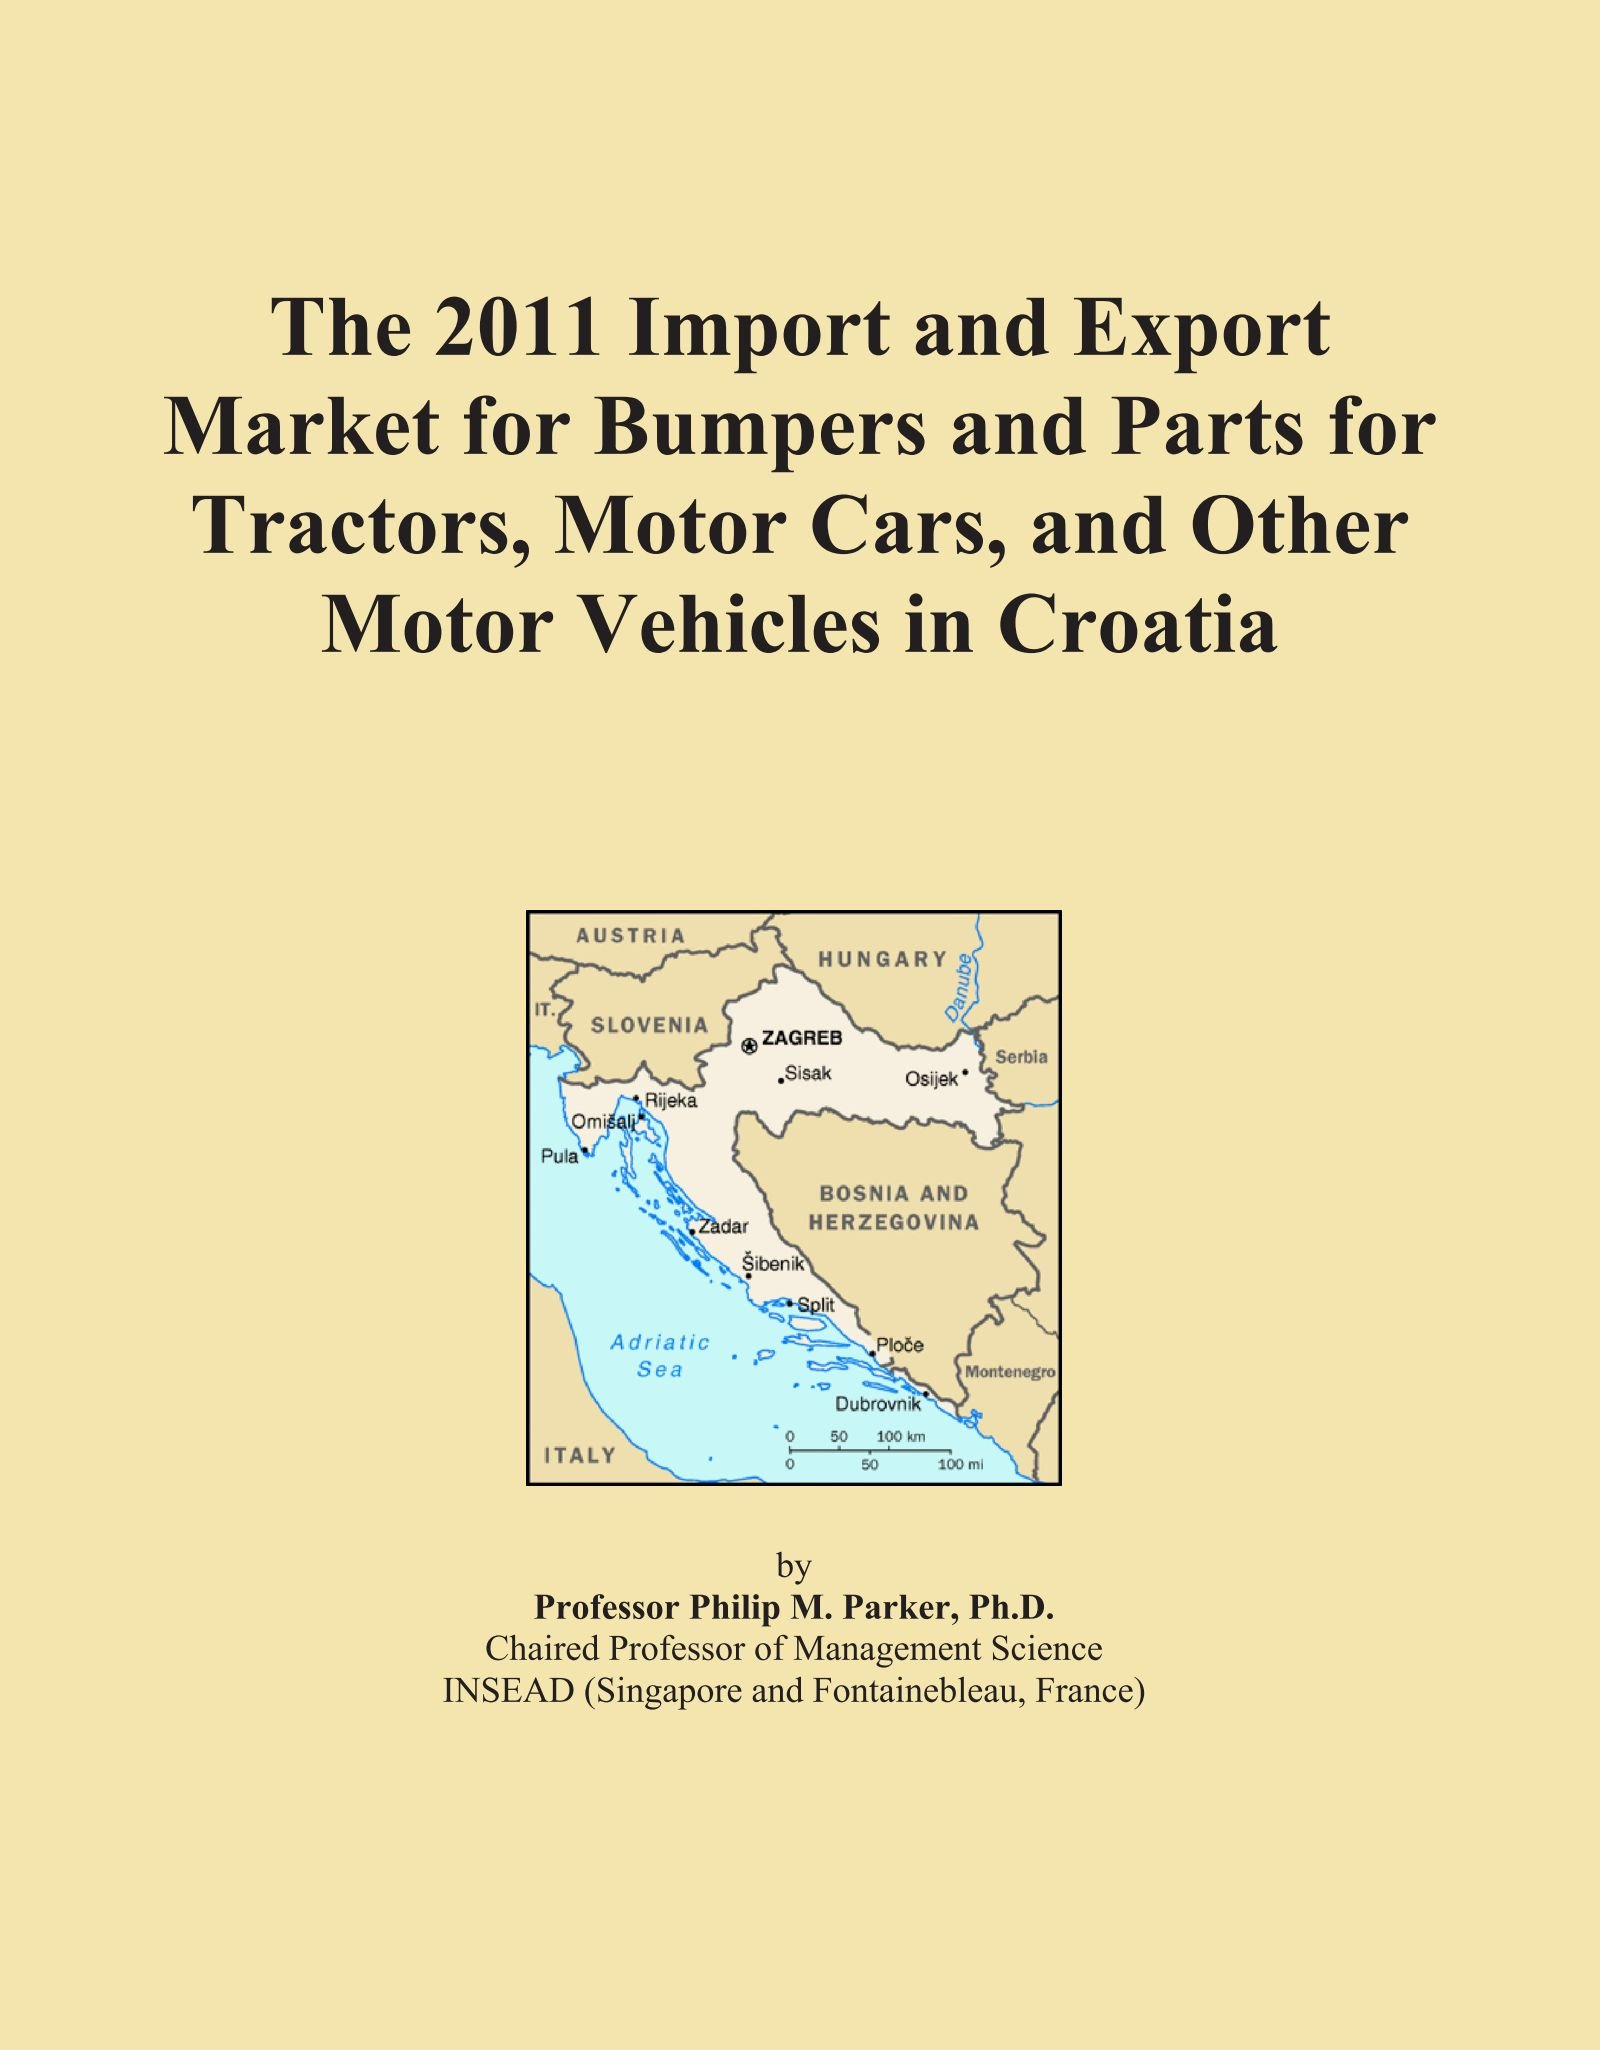 The 2011 Import and Export Market for Bumpers and Parts for Tractors, Motor Cars, and Other Motor Vehicles in Croatia PDF